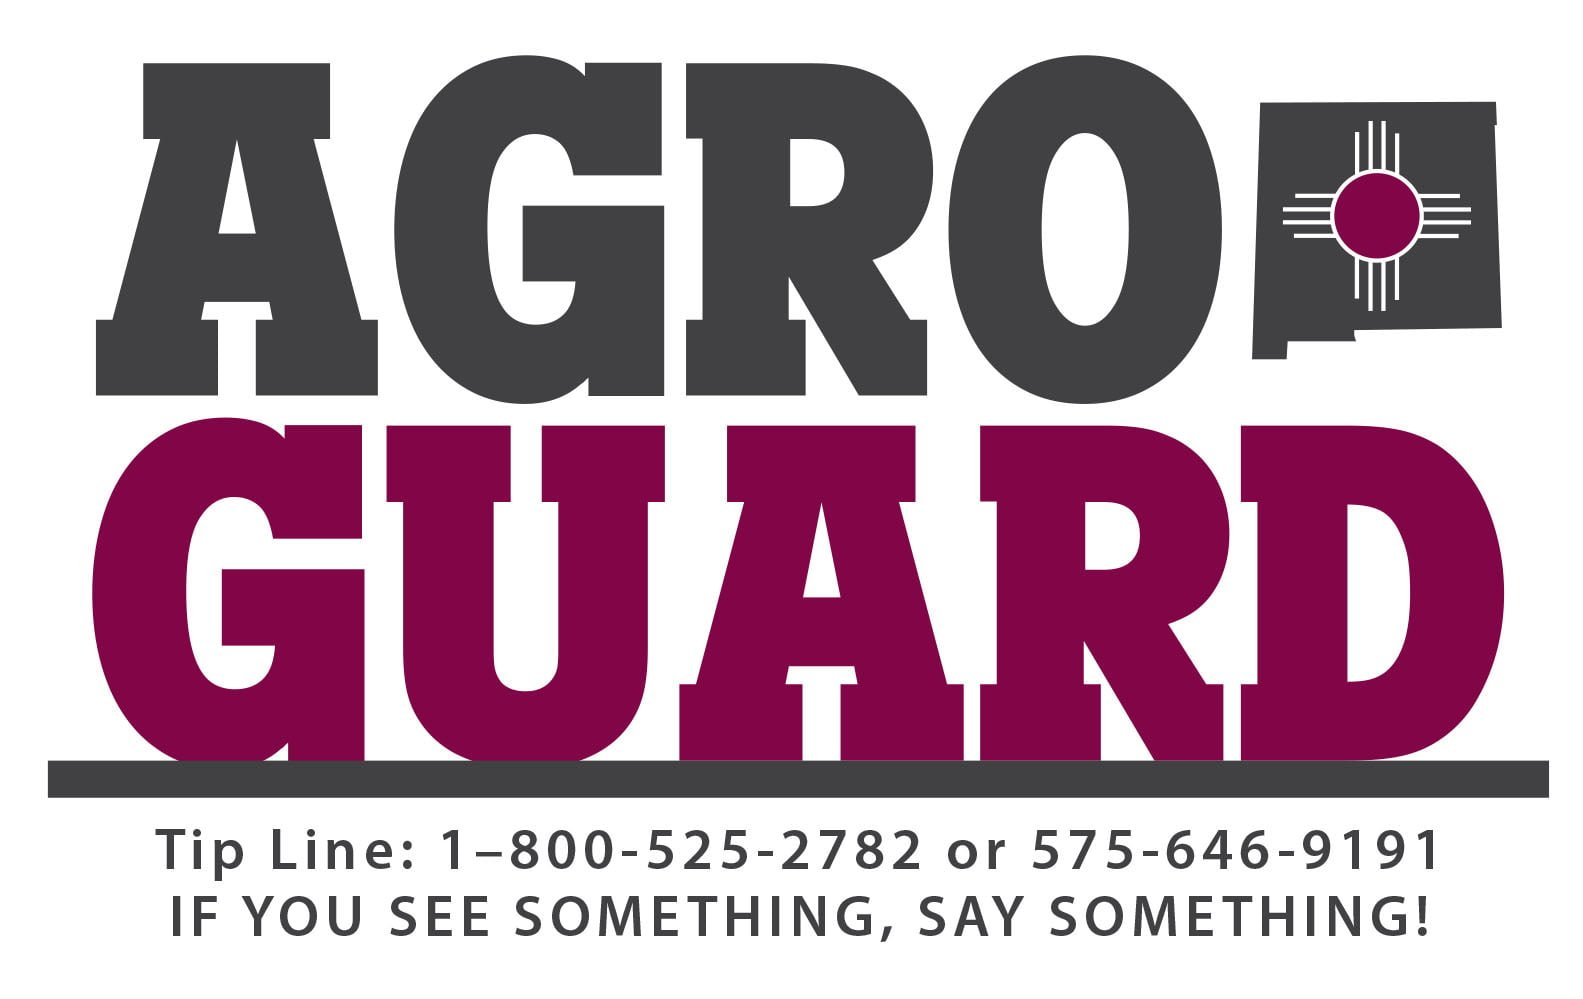 AGROGUARD is a community policing program designed by the New Mexico Department of Agriculture's office of biosecurity to protect the agriculture industry. As part of AGROGUARD, the Agricultural Reporting Hotline allows anyone to anonymously report suspicious activity within the agriculture community.